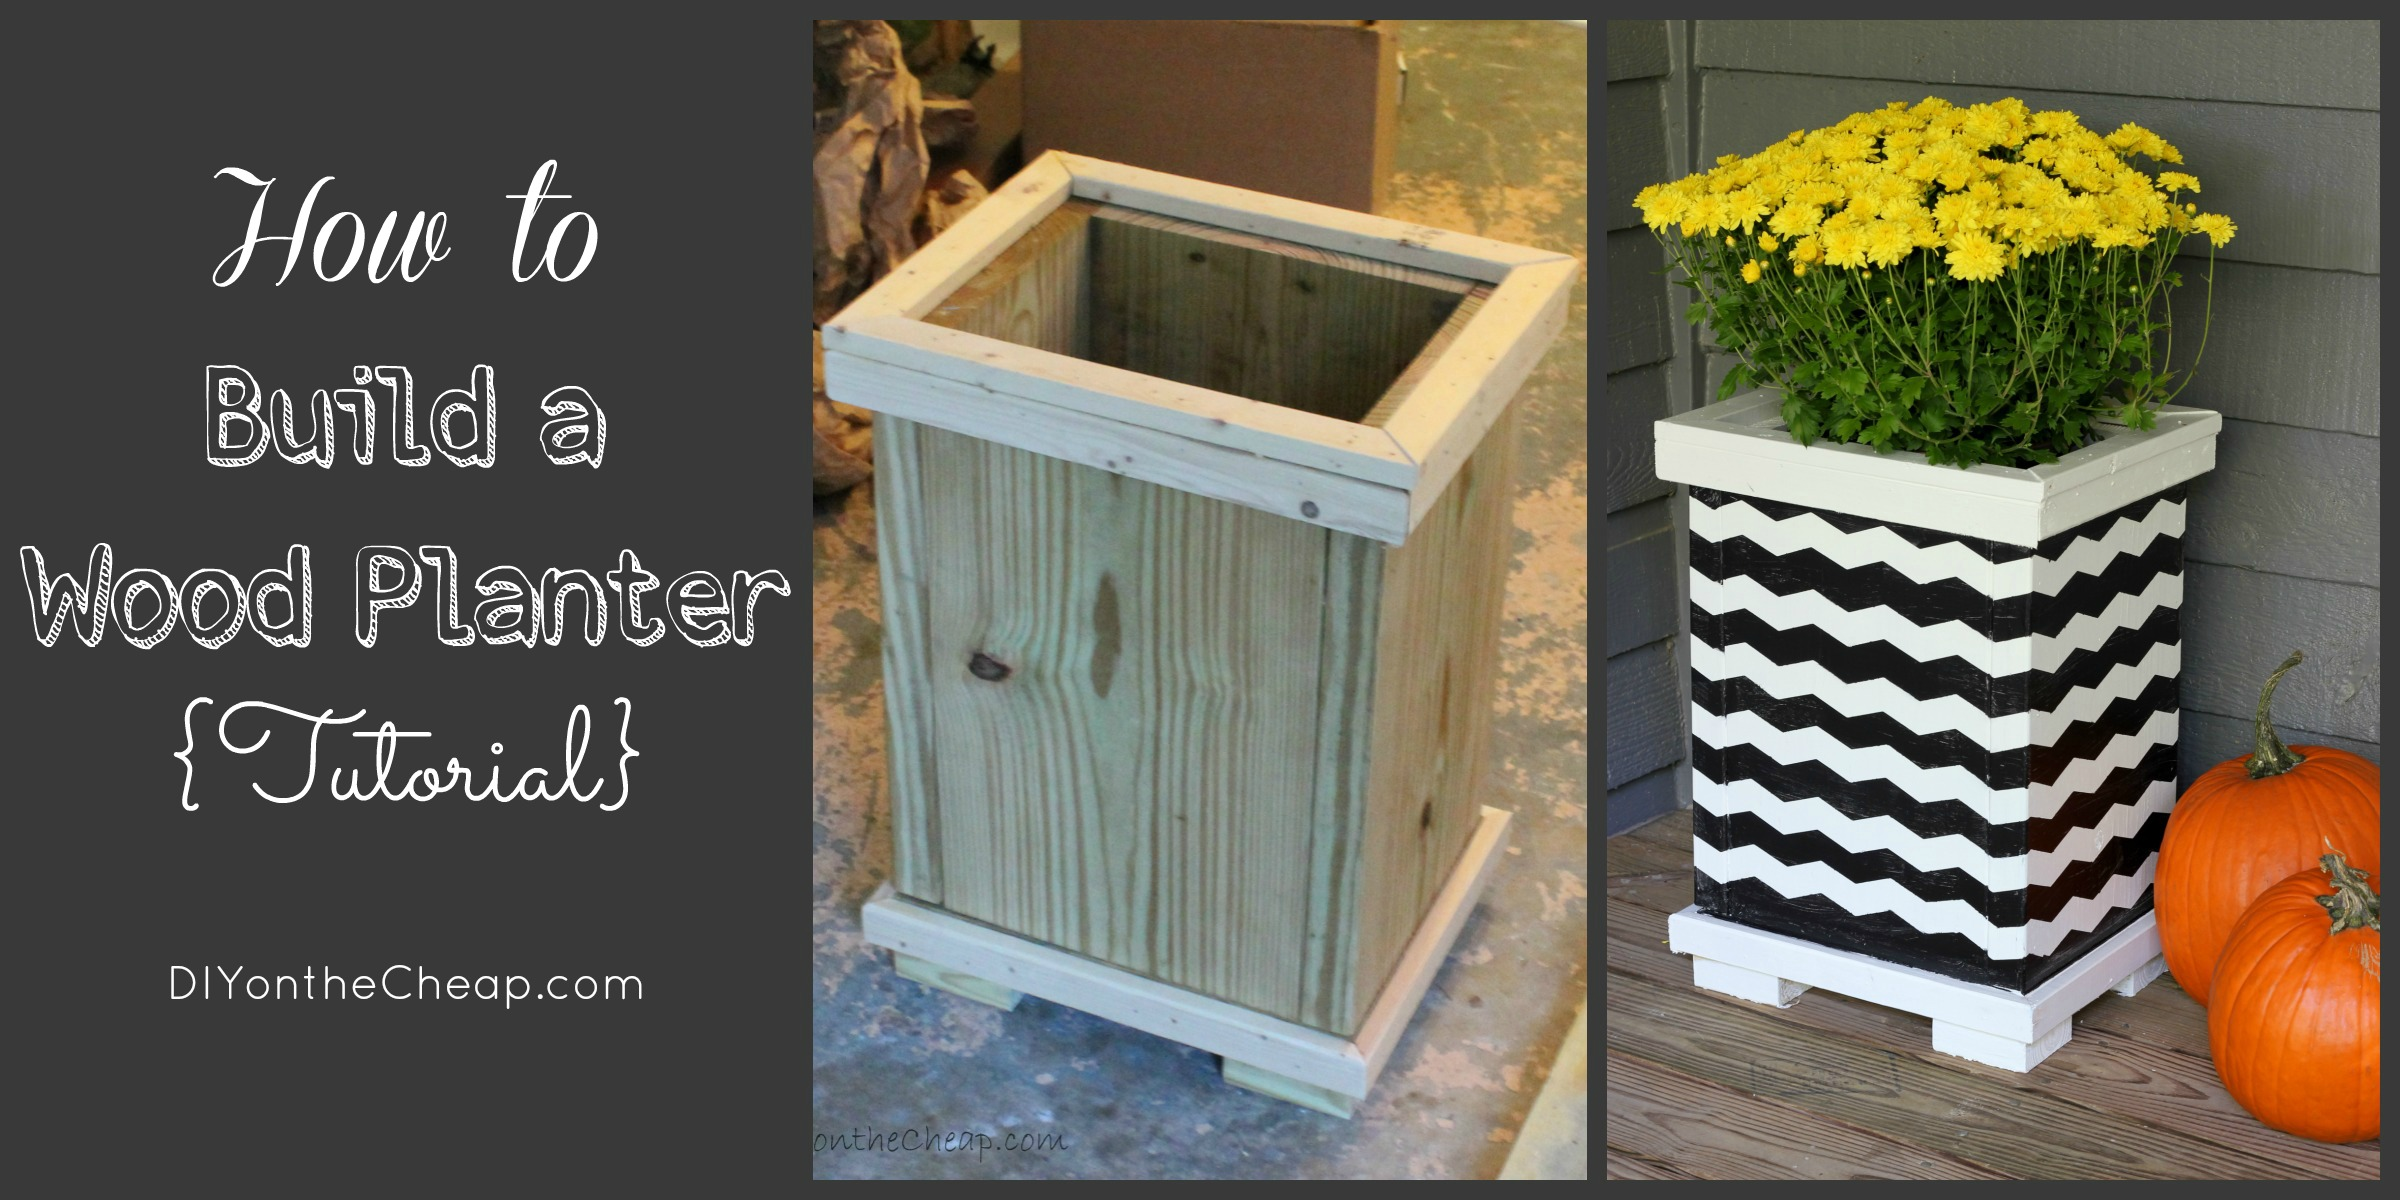 how to build a wood planter tutorial - Wood Planters